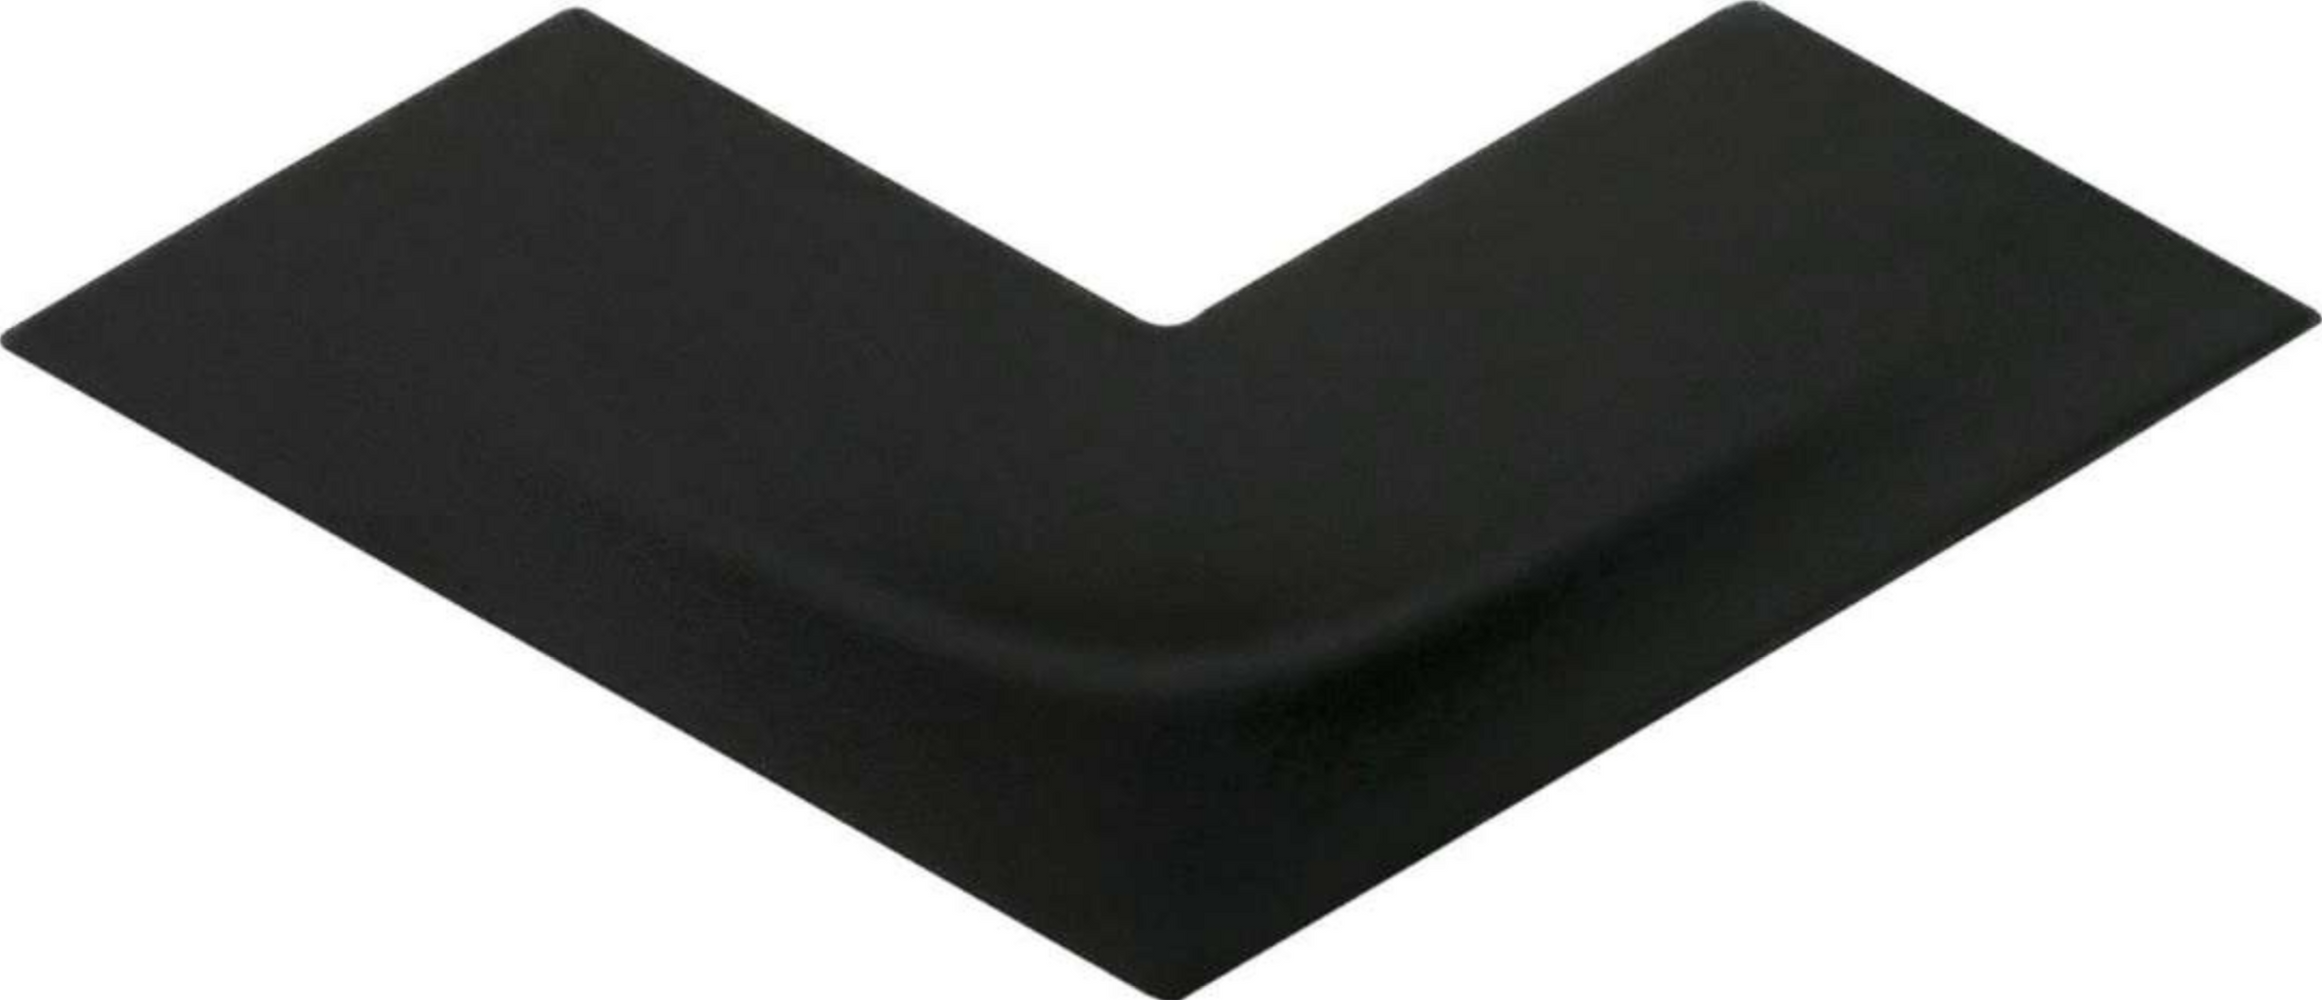 Versatile Arc Black Ceramic Glossy 3D Wall Tile